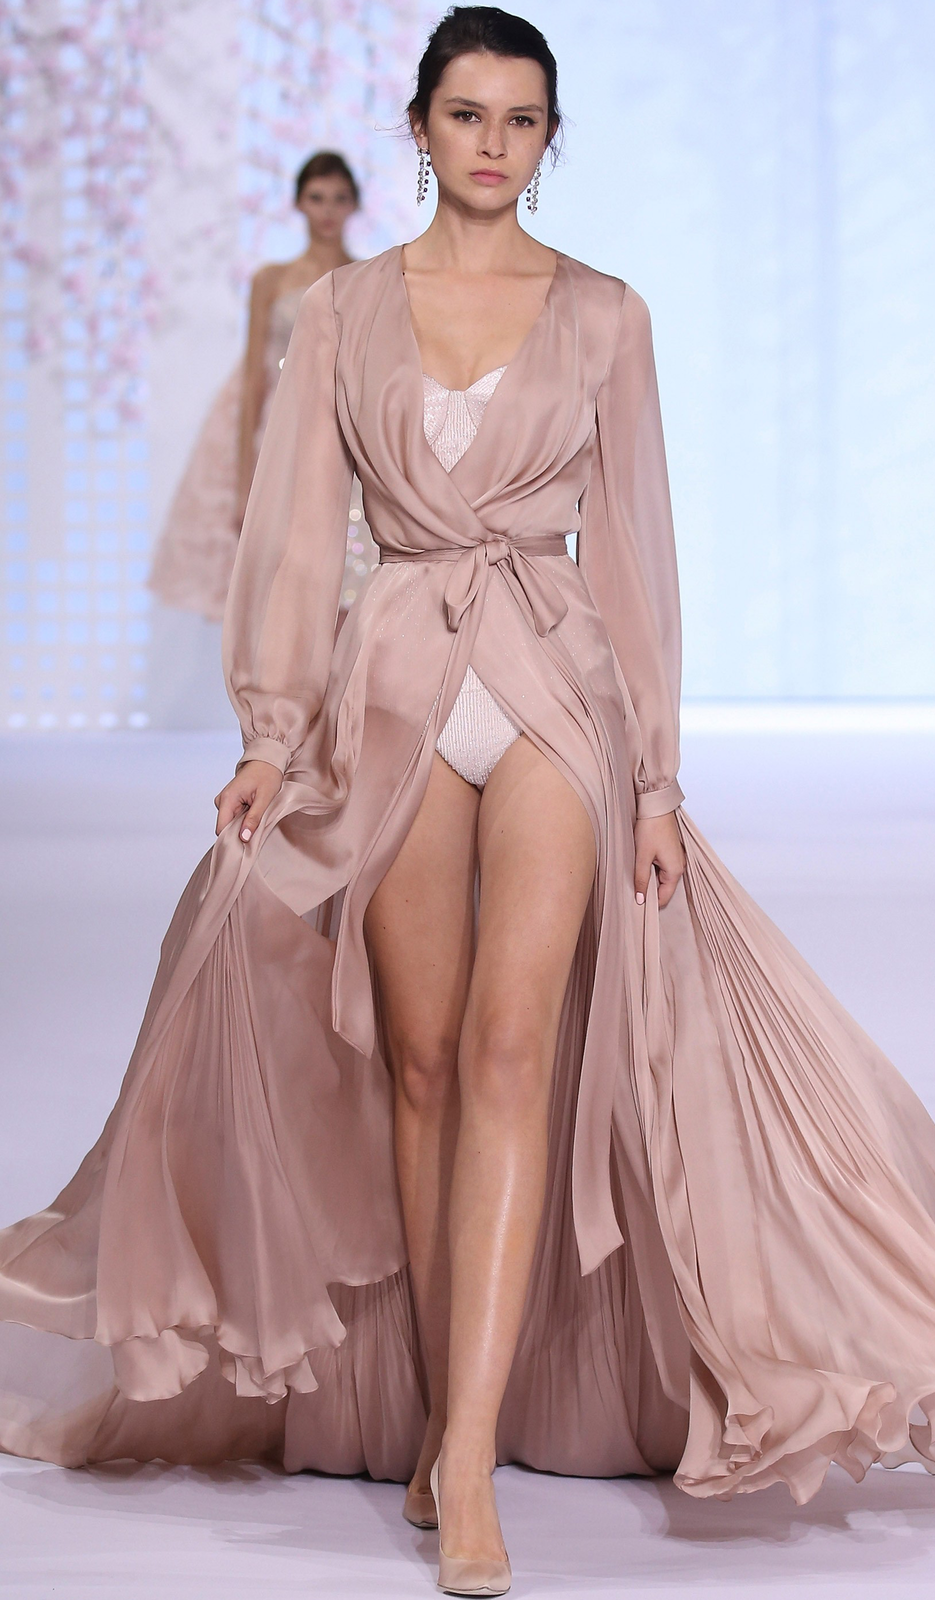 Ralph & Russo Spring/Summer 2016 Couture